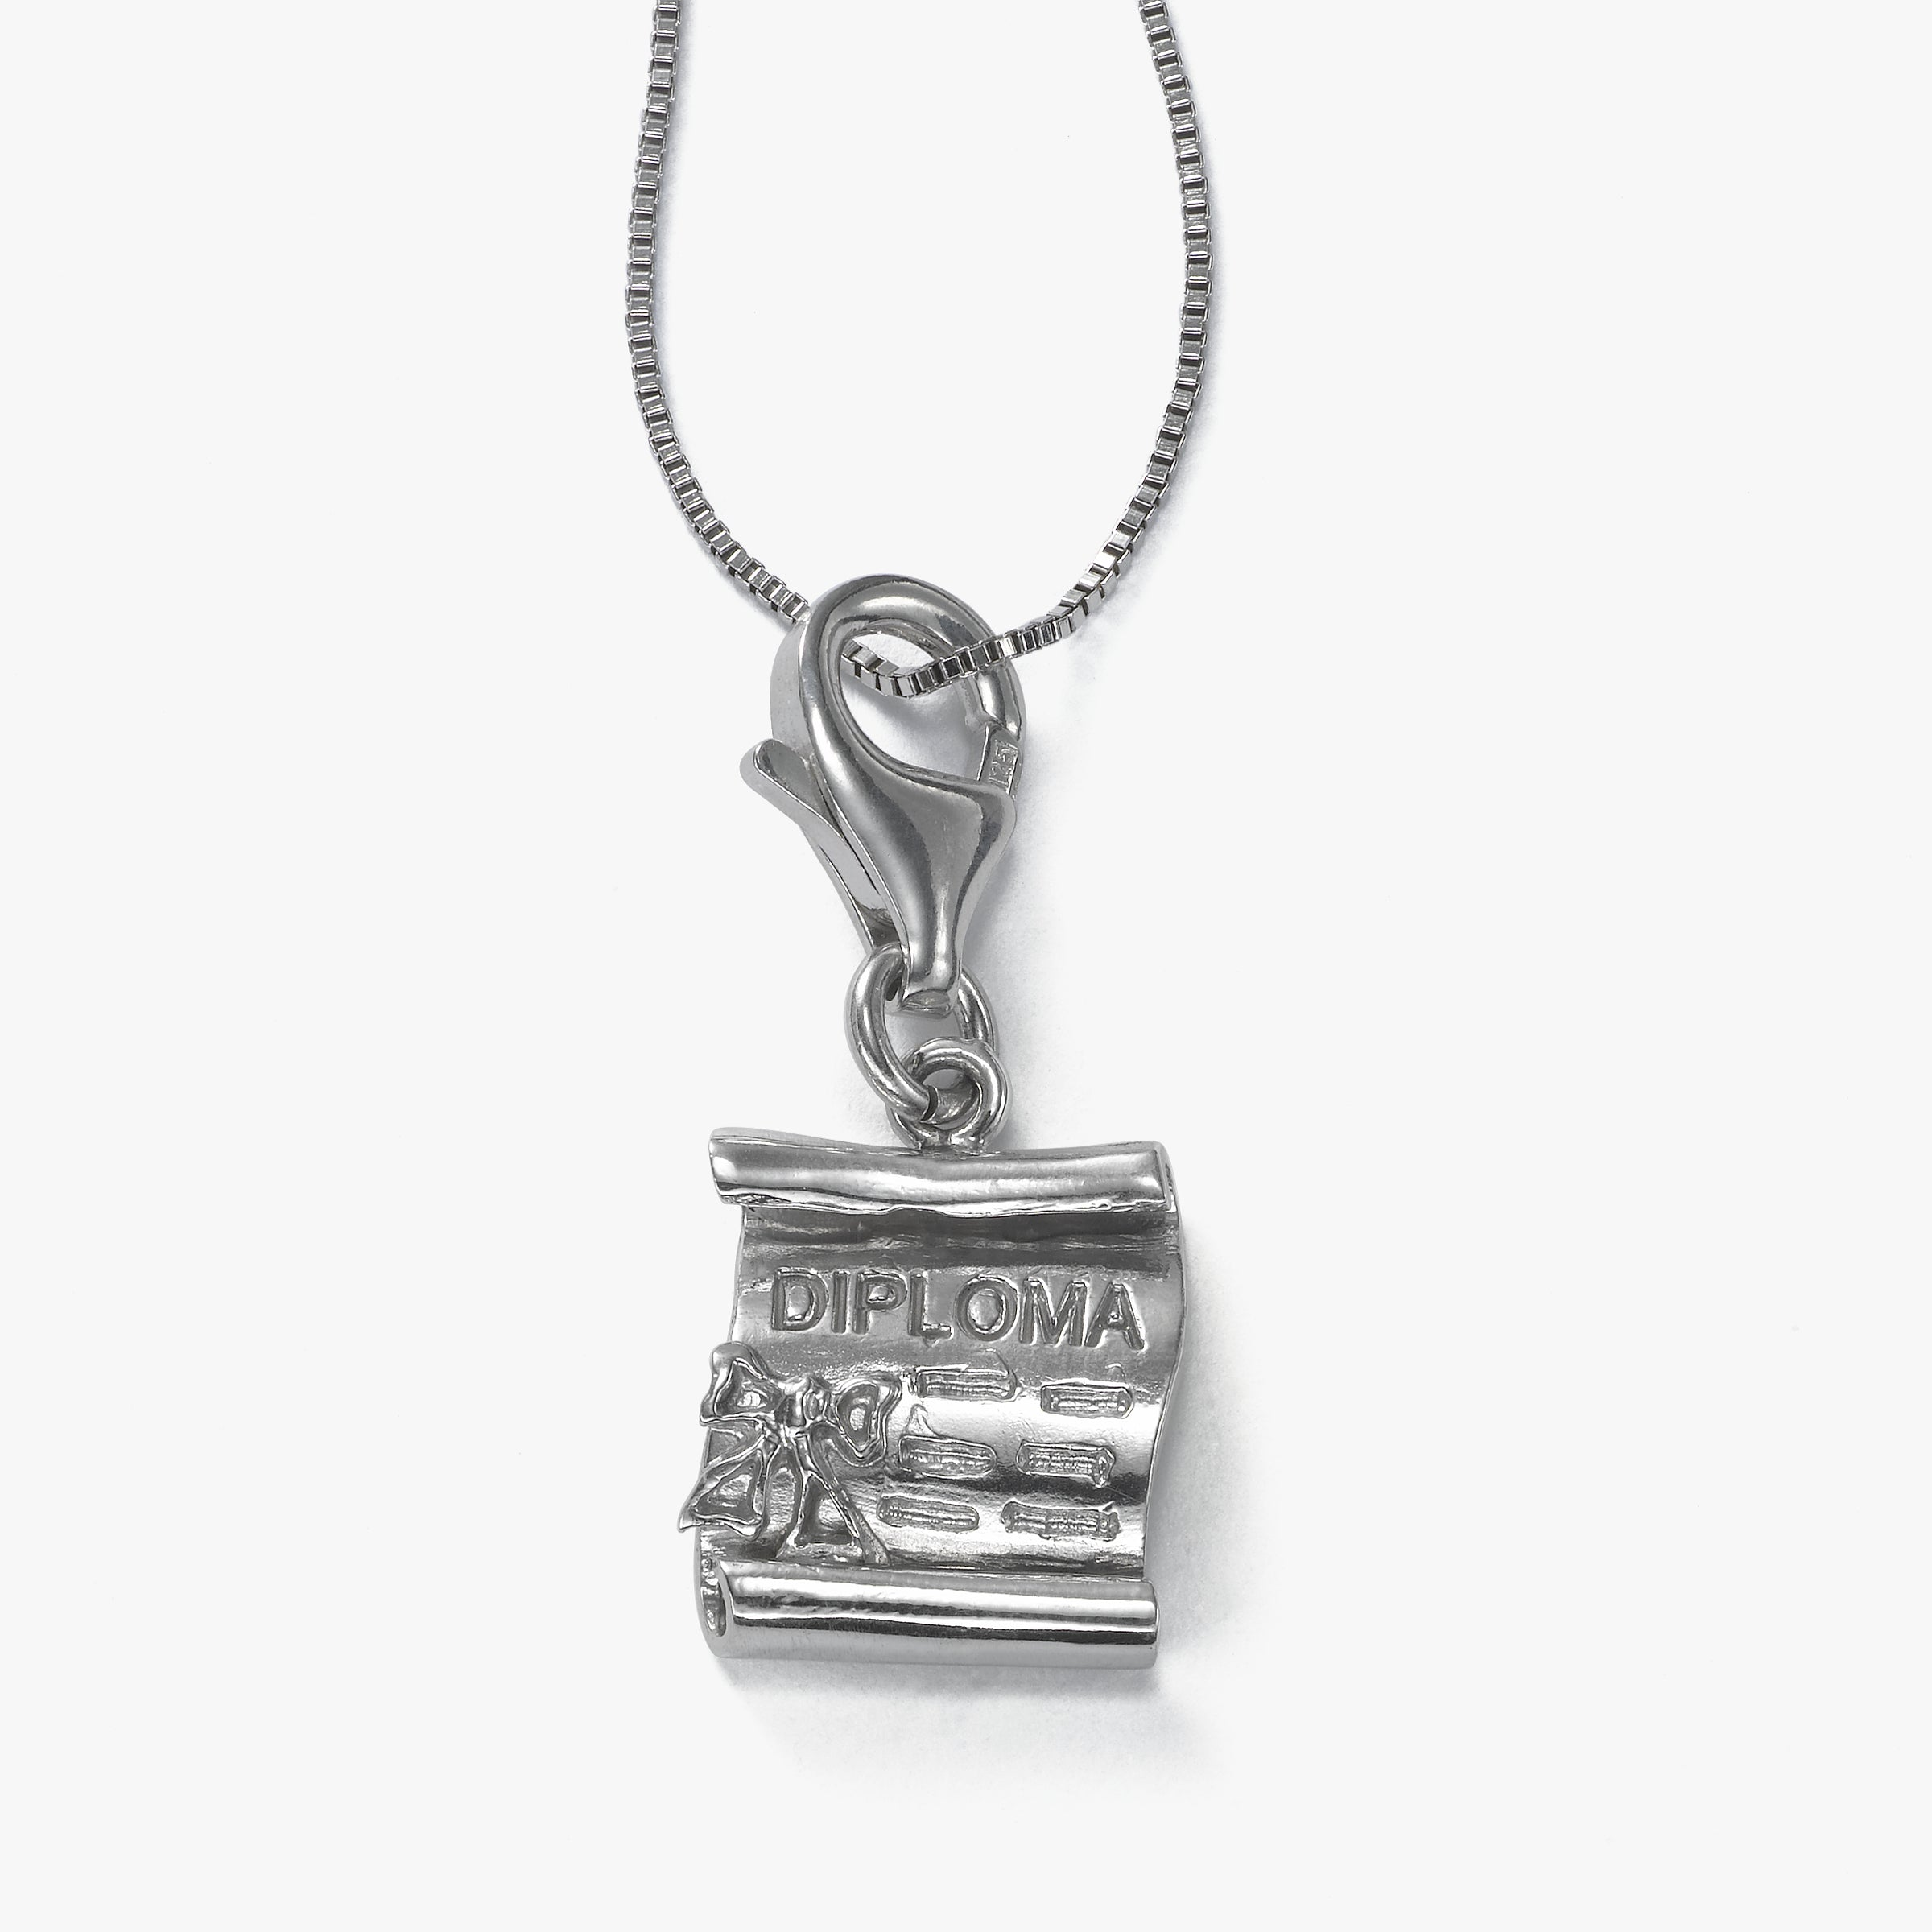 Graduation Diploma Charm, Sterling Silver